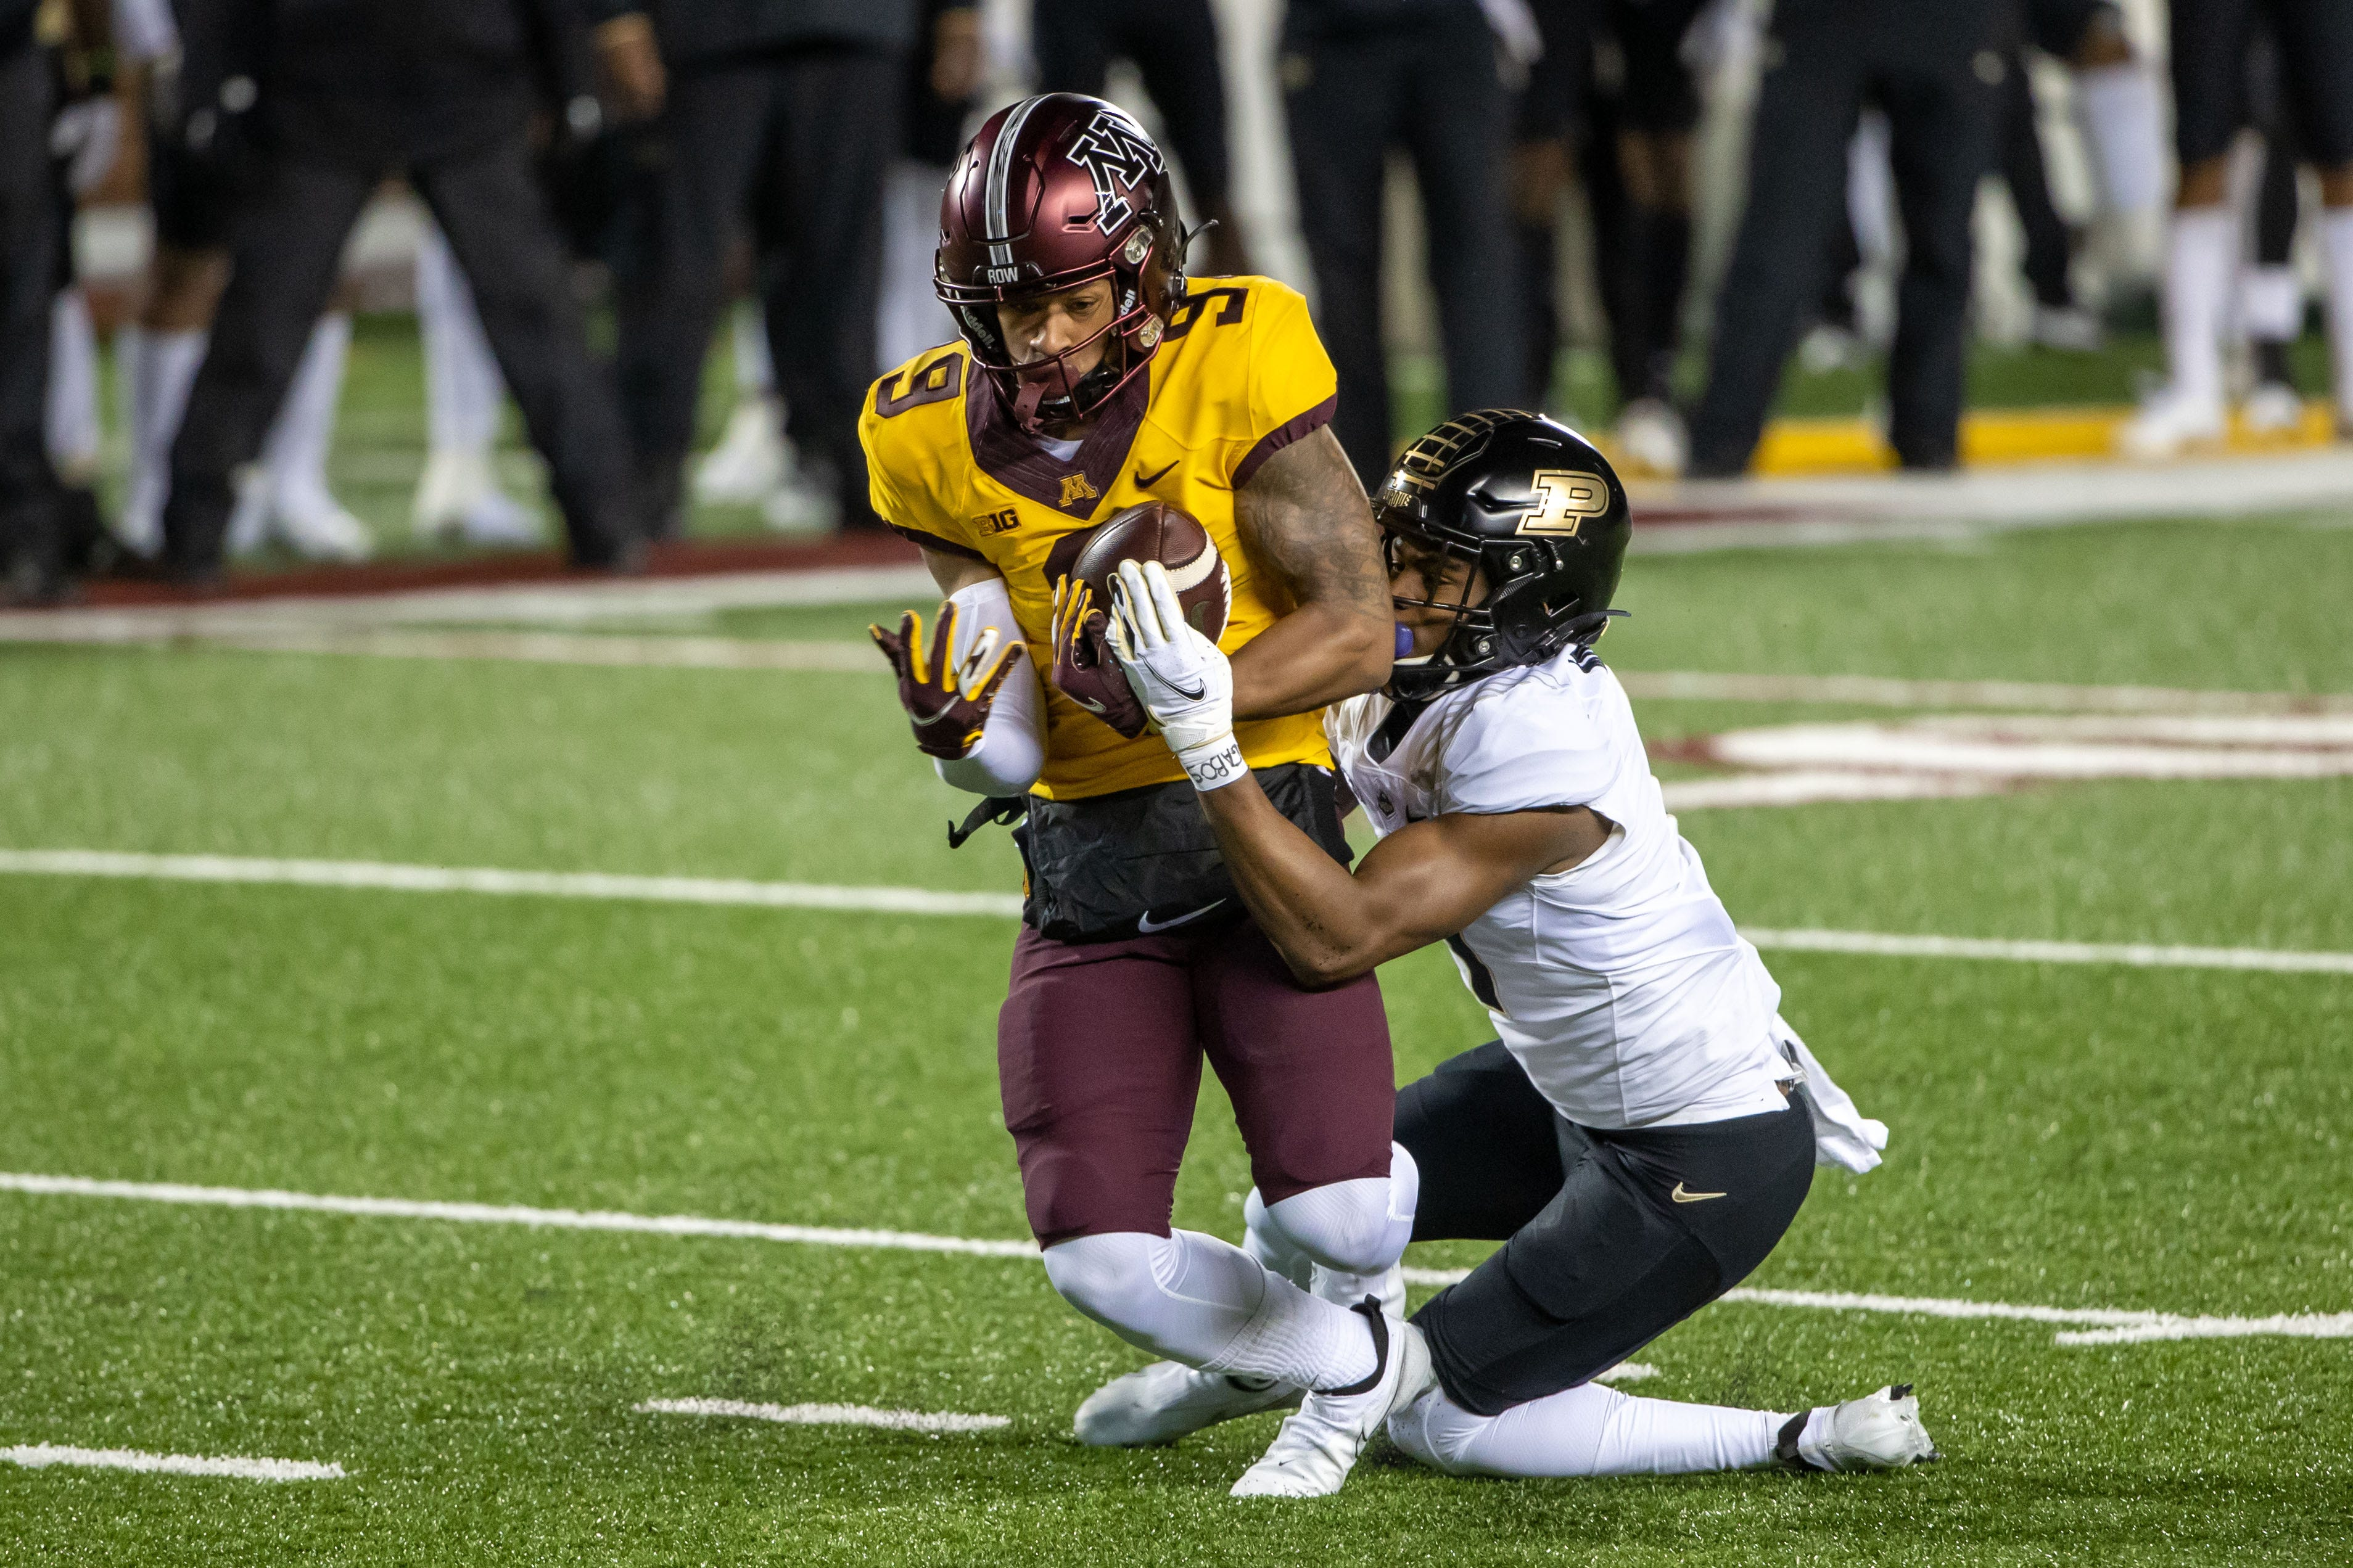 College football COVID-19: Sun Bowl's streak of 86 consecutive games coming to end